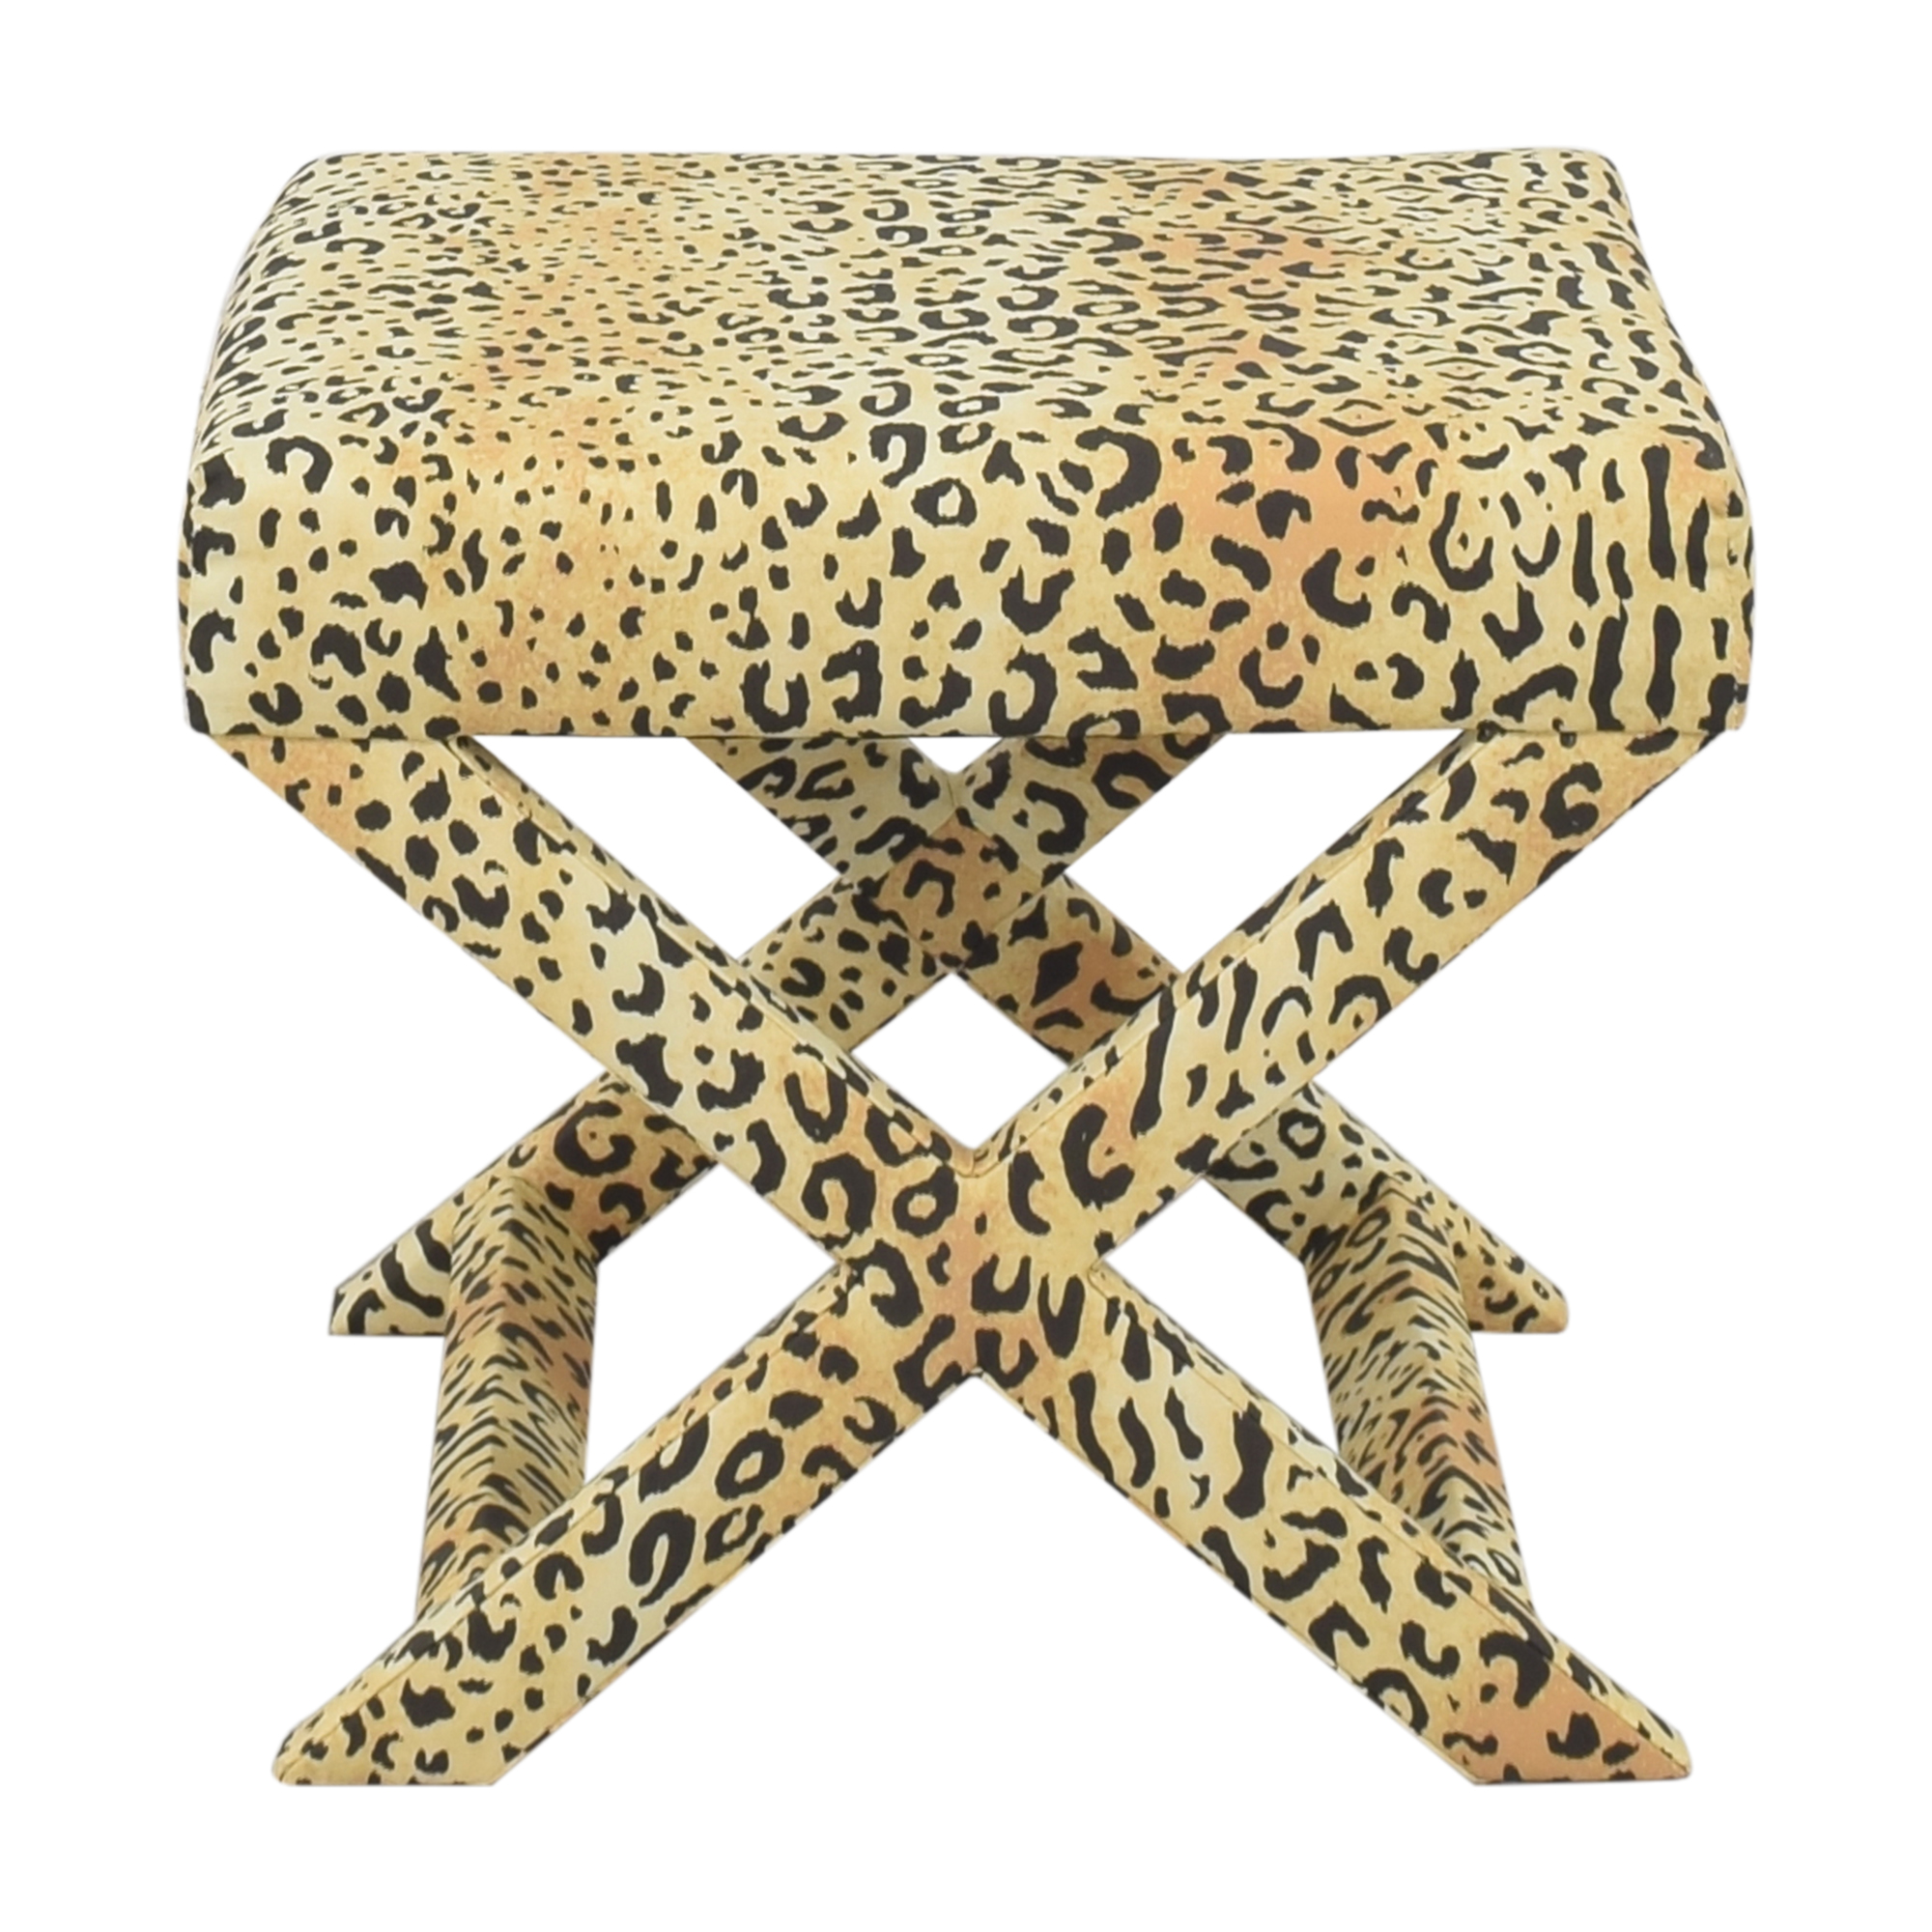 The Inside The Inside Leopard X Bench ct